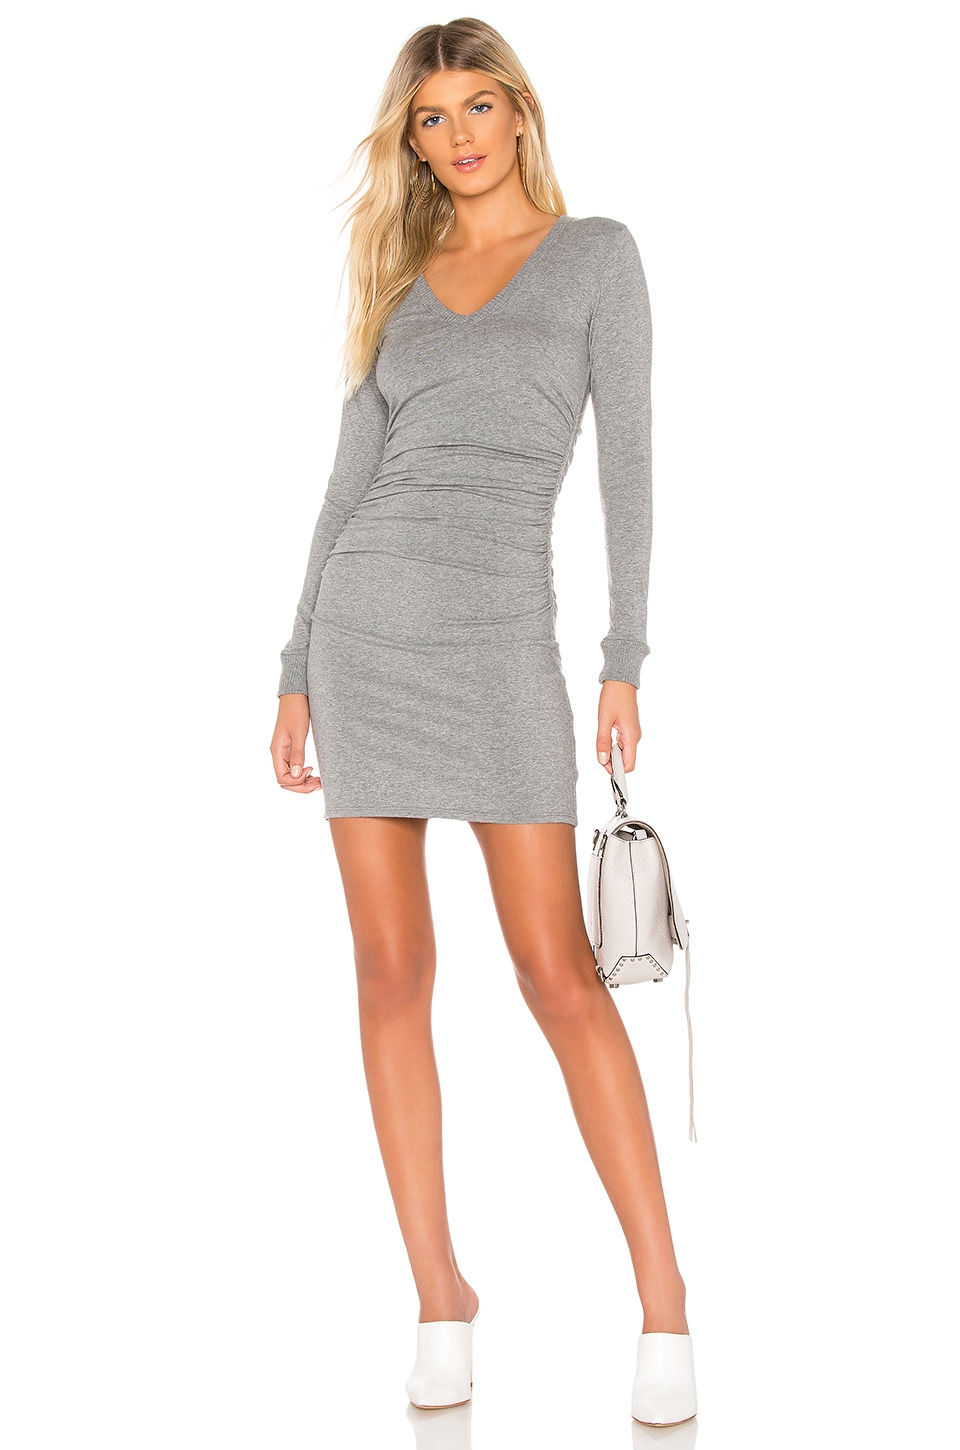 Cashmere V Neck Ruched Dress by Enza Costa